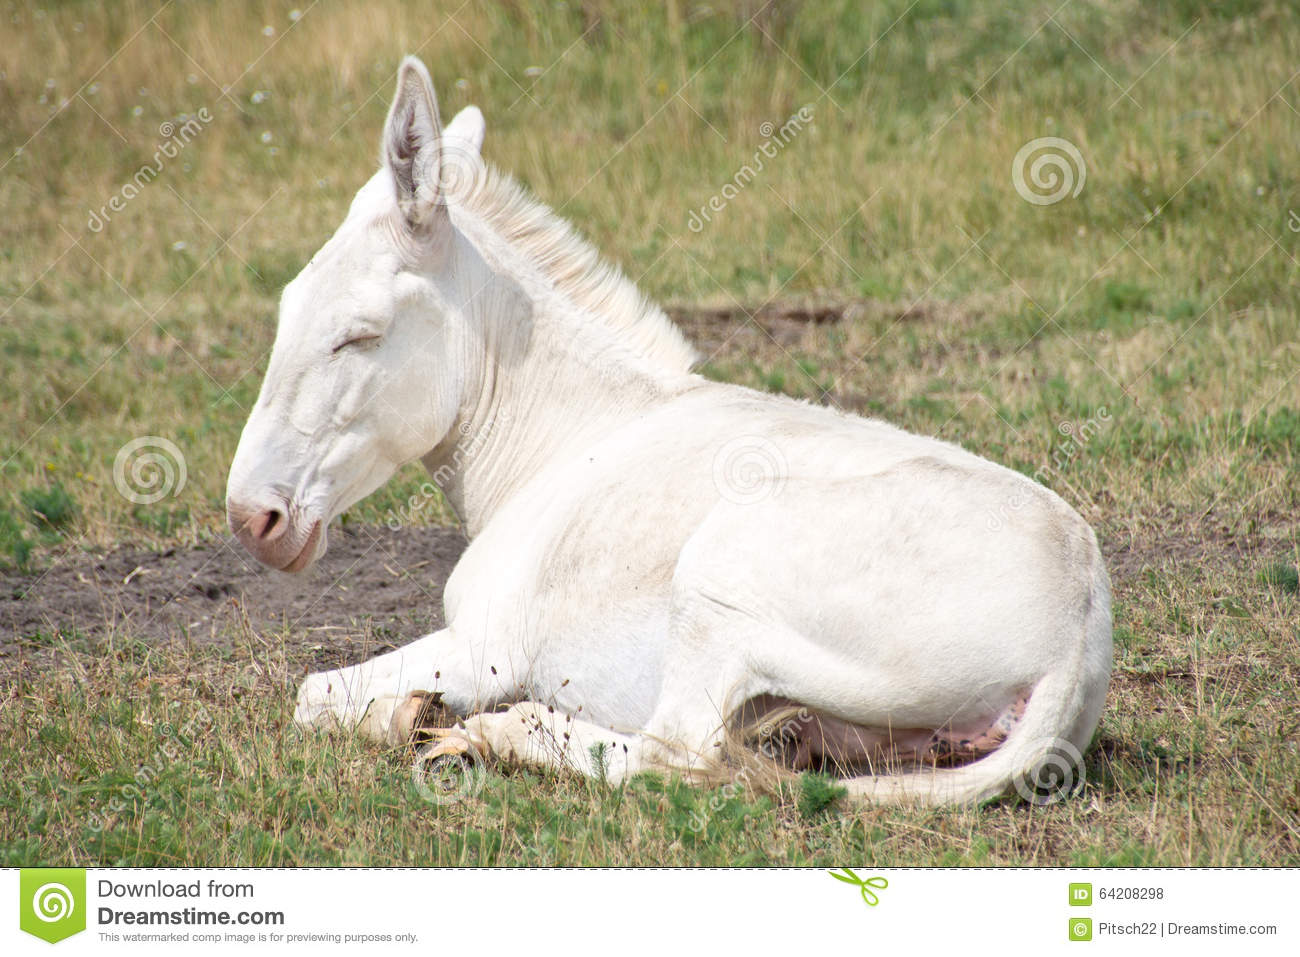 White donkey stock photo image 64208298 for Burro blanco